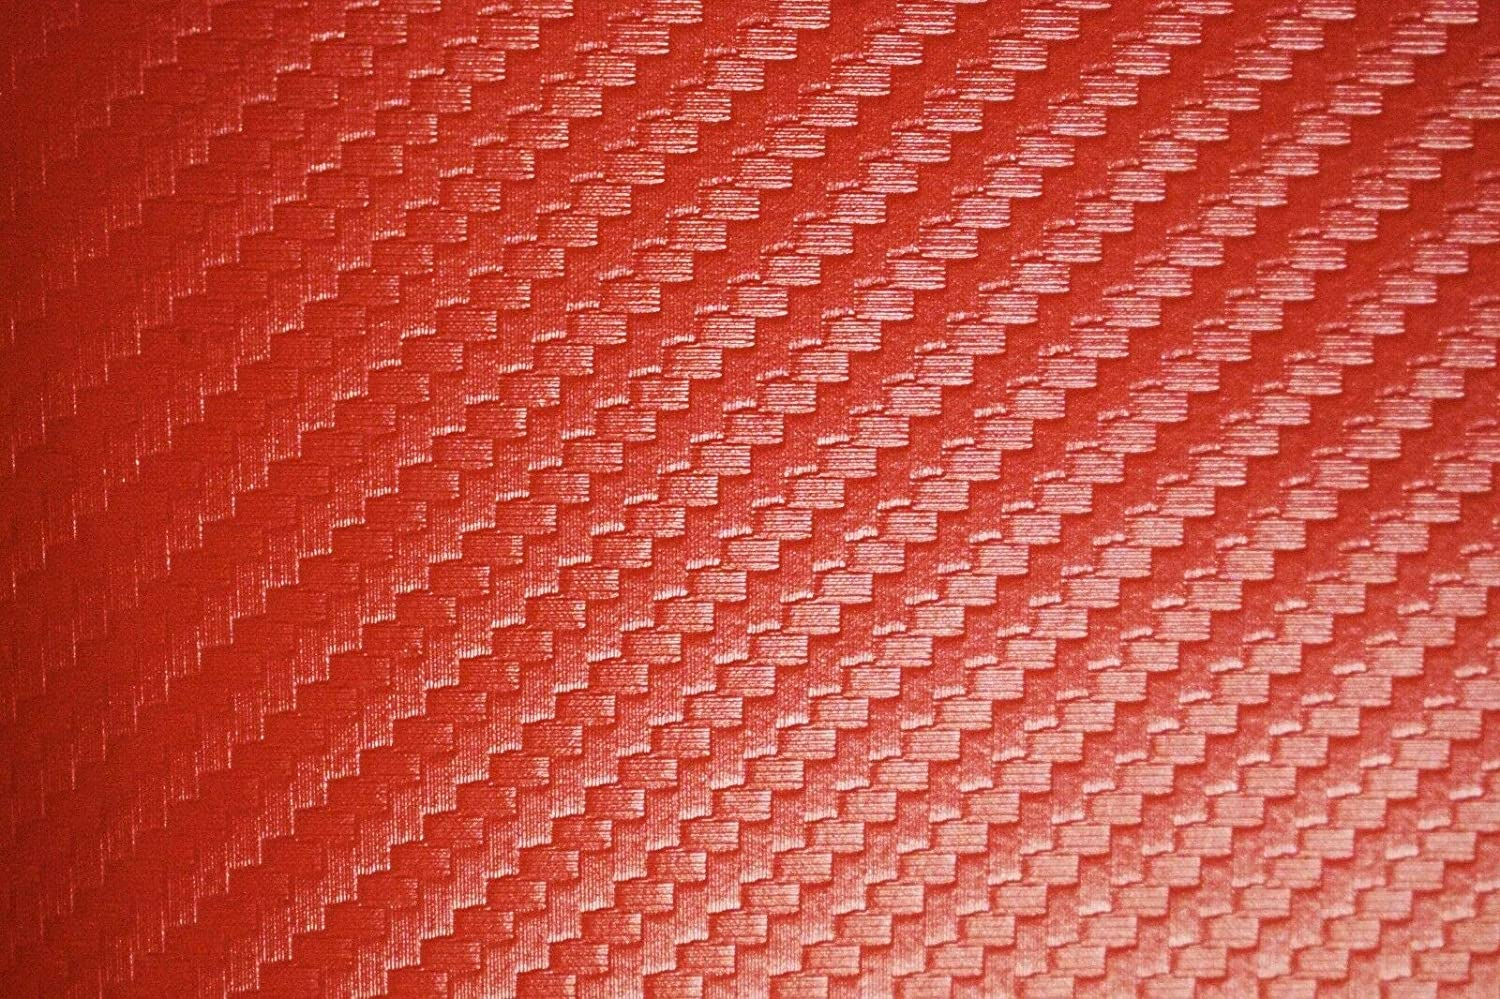 Carbon Fiber Marine Vinyl Fabric Fire Red Outdoor Automotive Upholstery 54